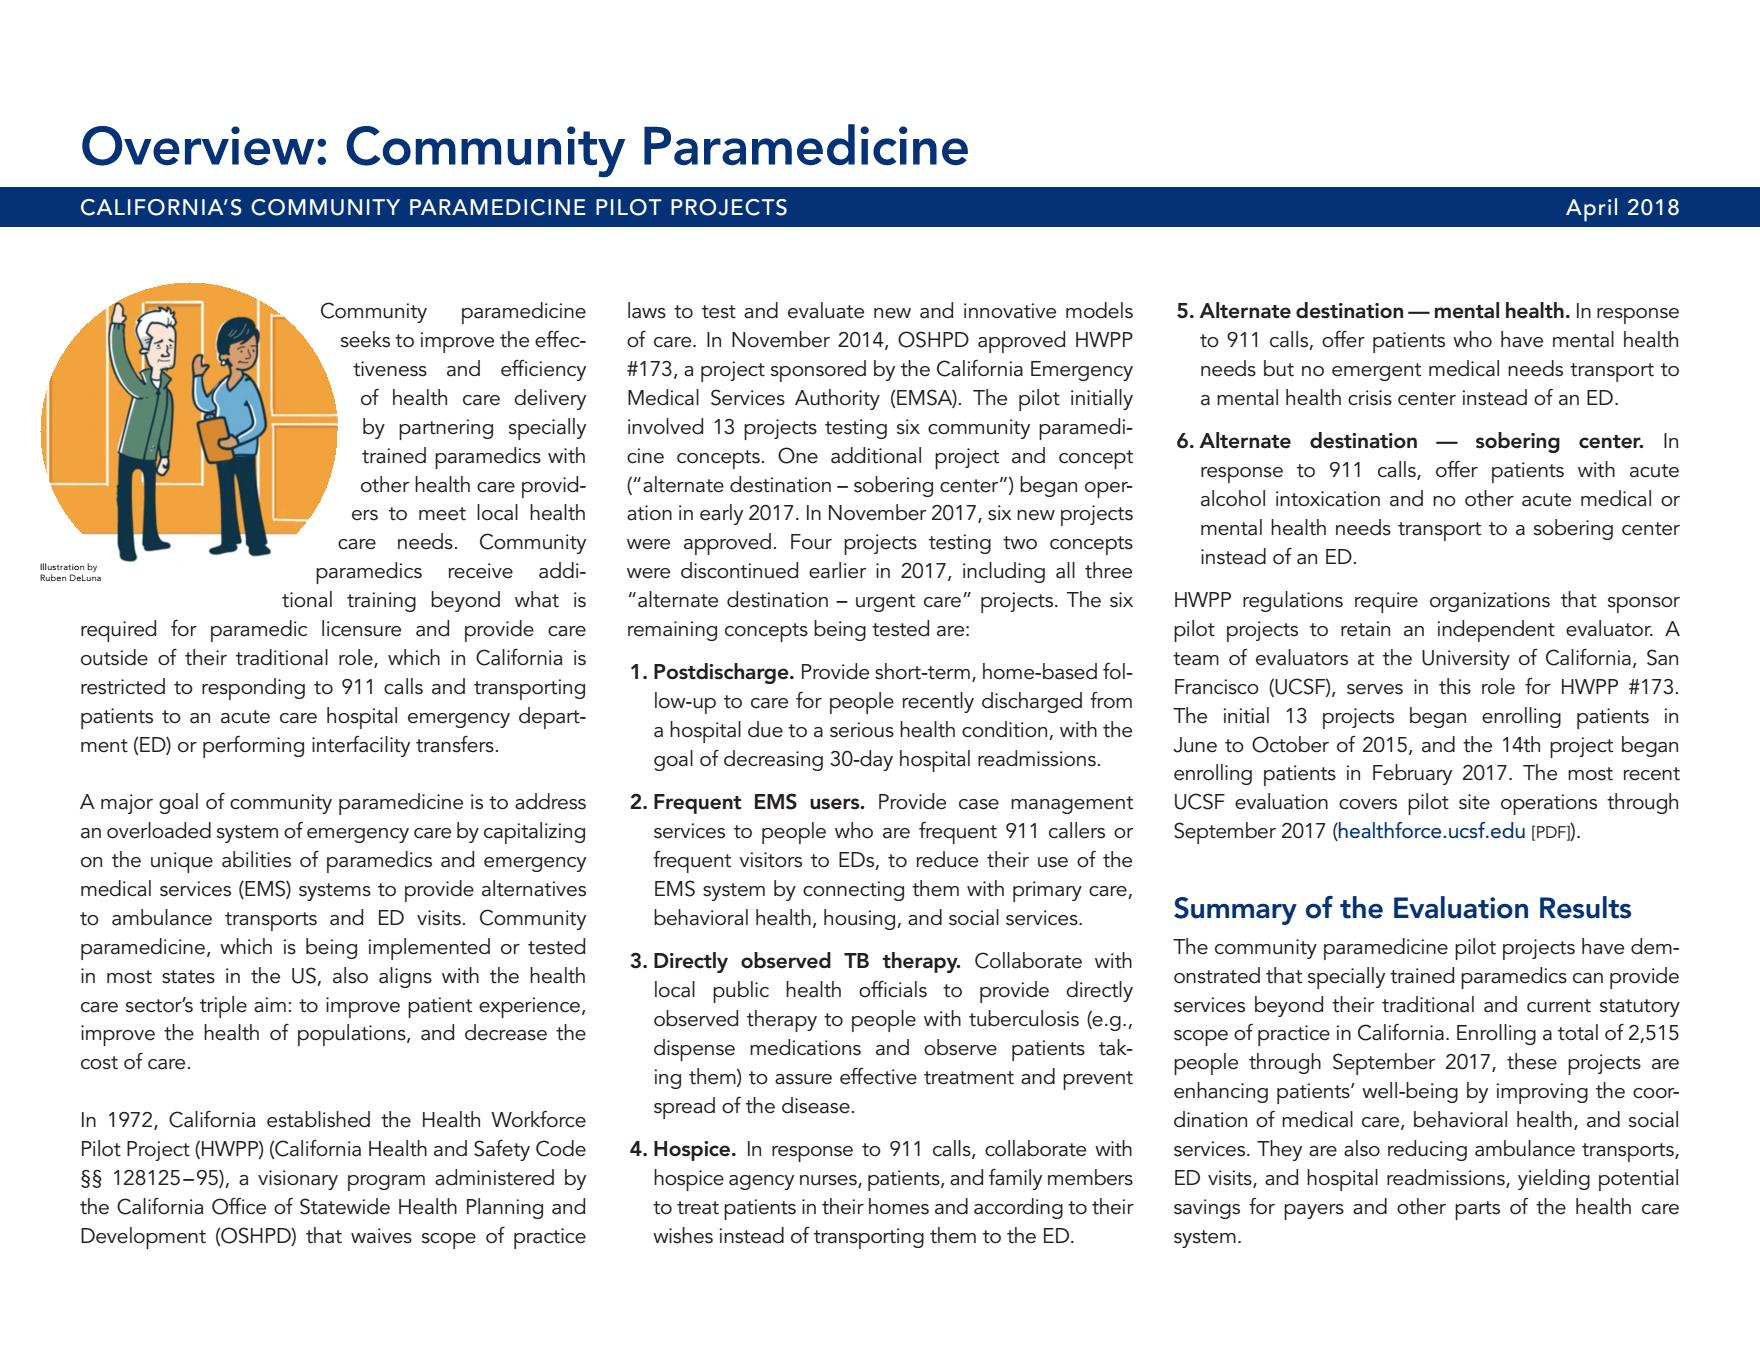 Overview of Community Paramedicine